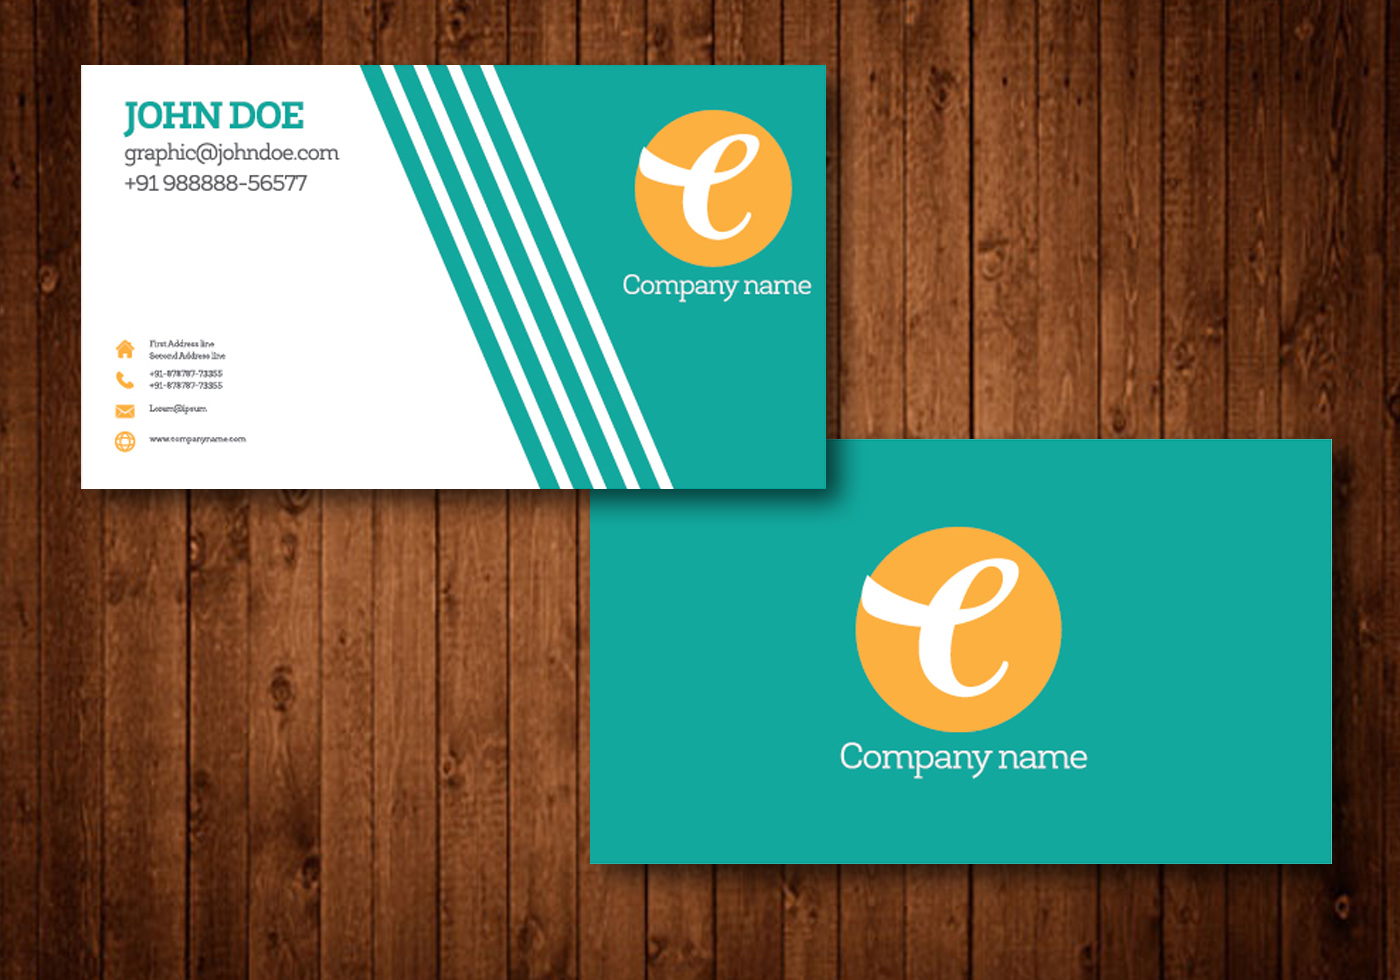 Business Card Template Free Vector Art - (15202 Free Downloads)